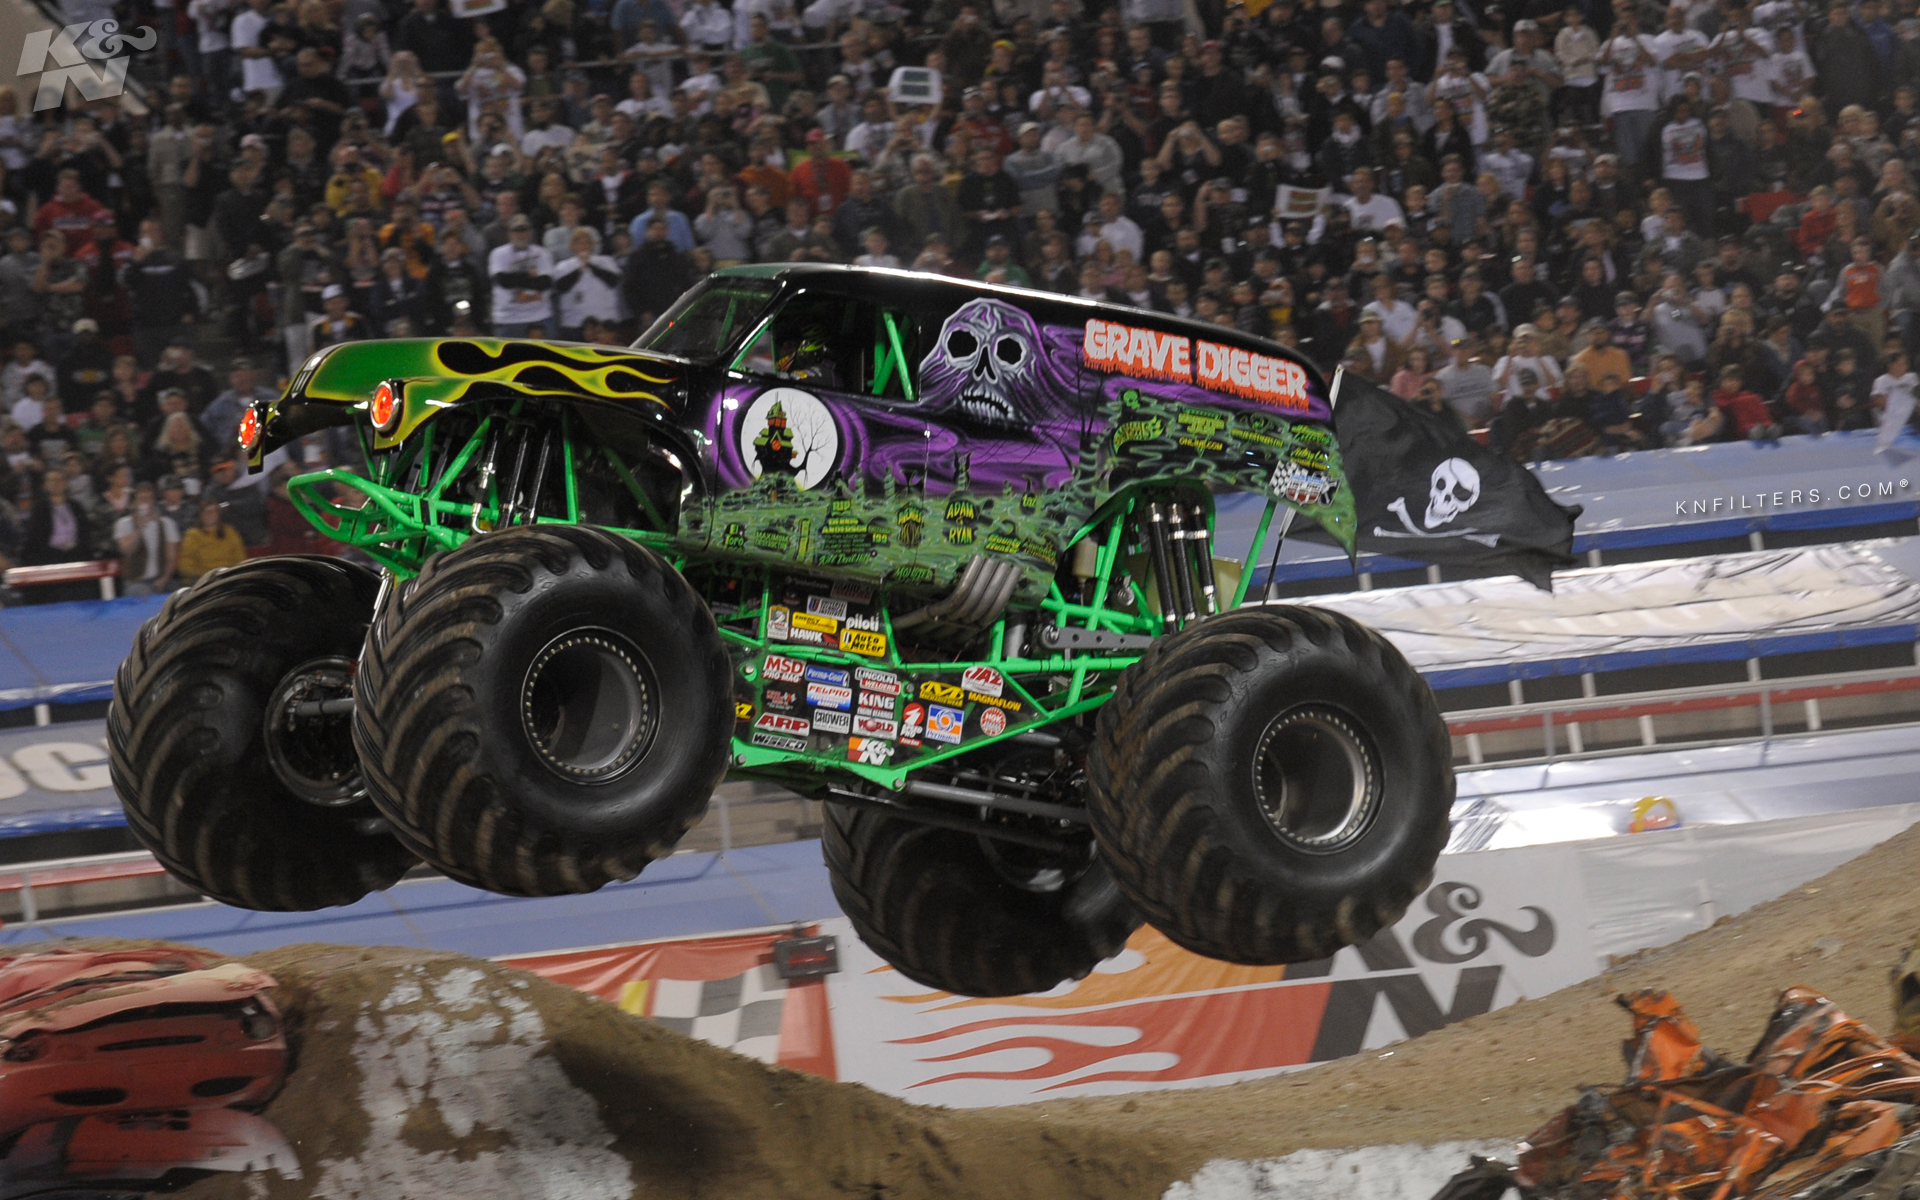 54 Grave Digger Wallpaper On Wallpapersafari